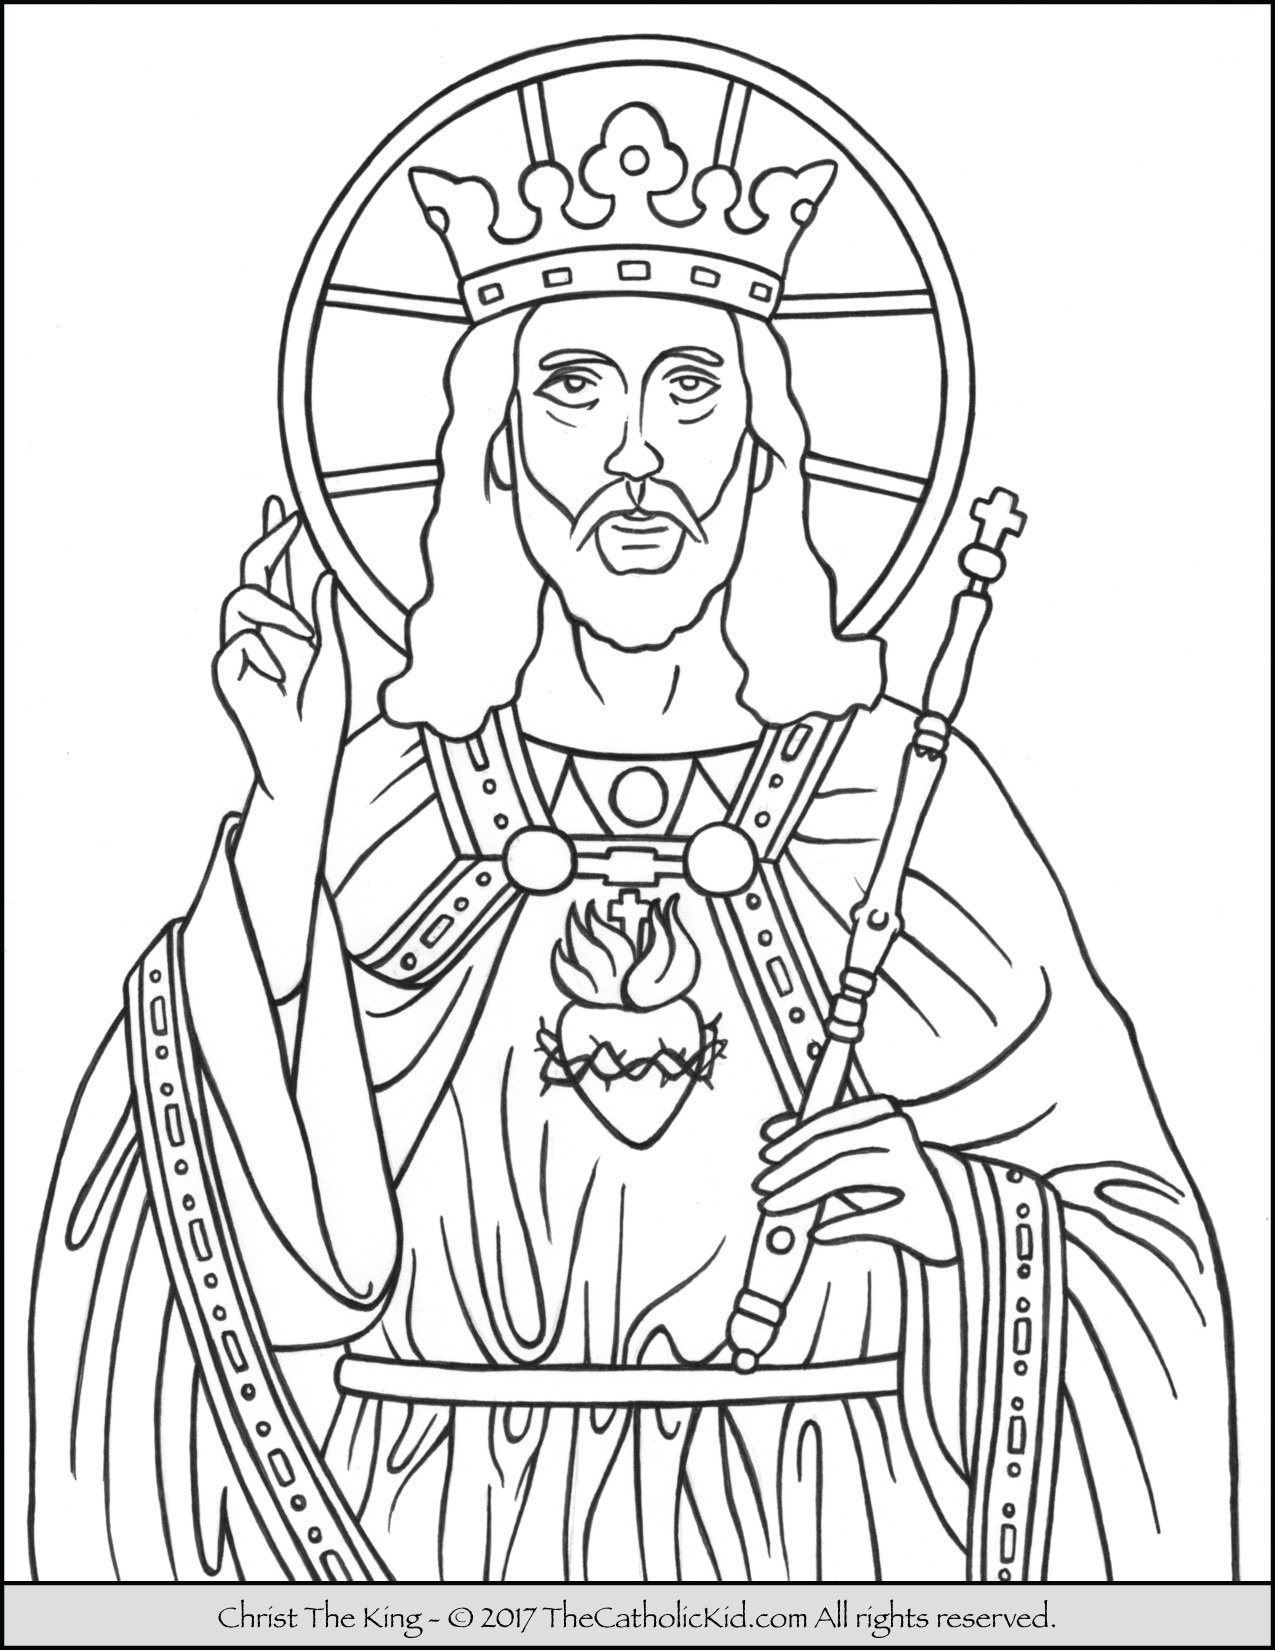 Christ The King Coloring Page TheCatholicKidcom